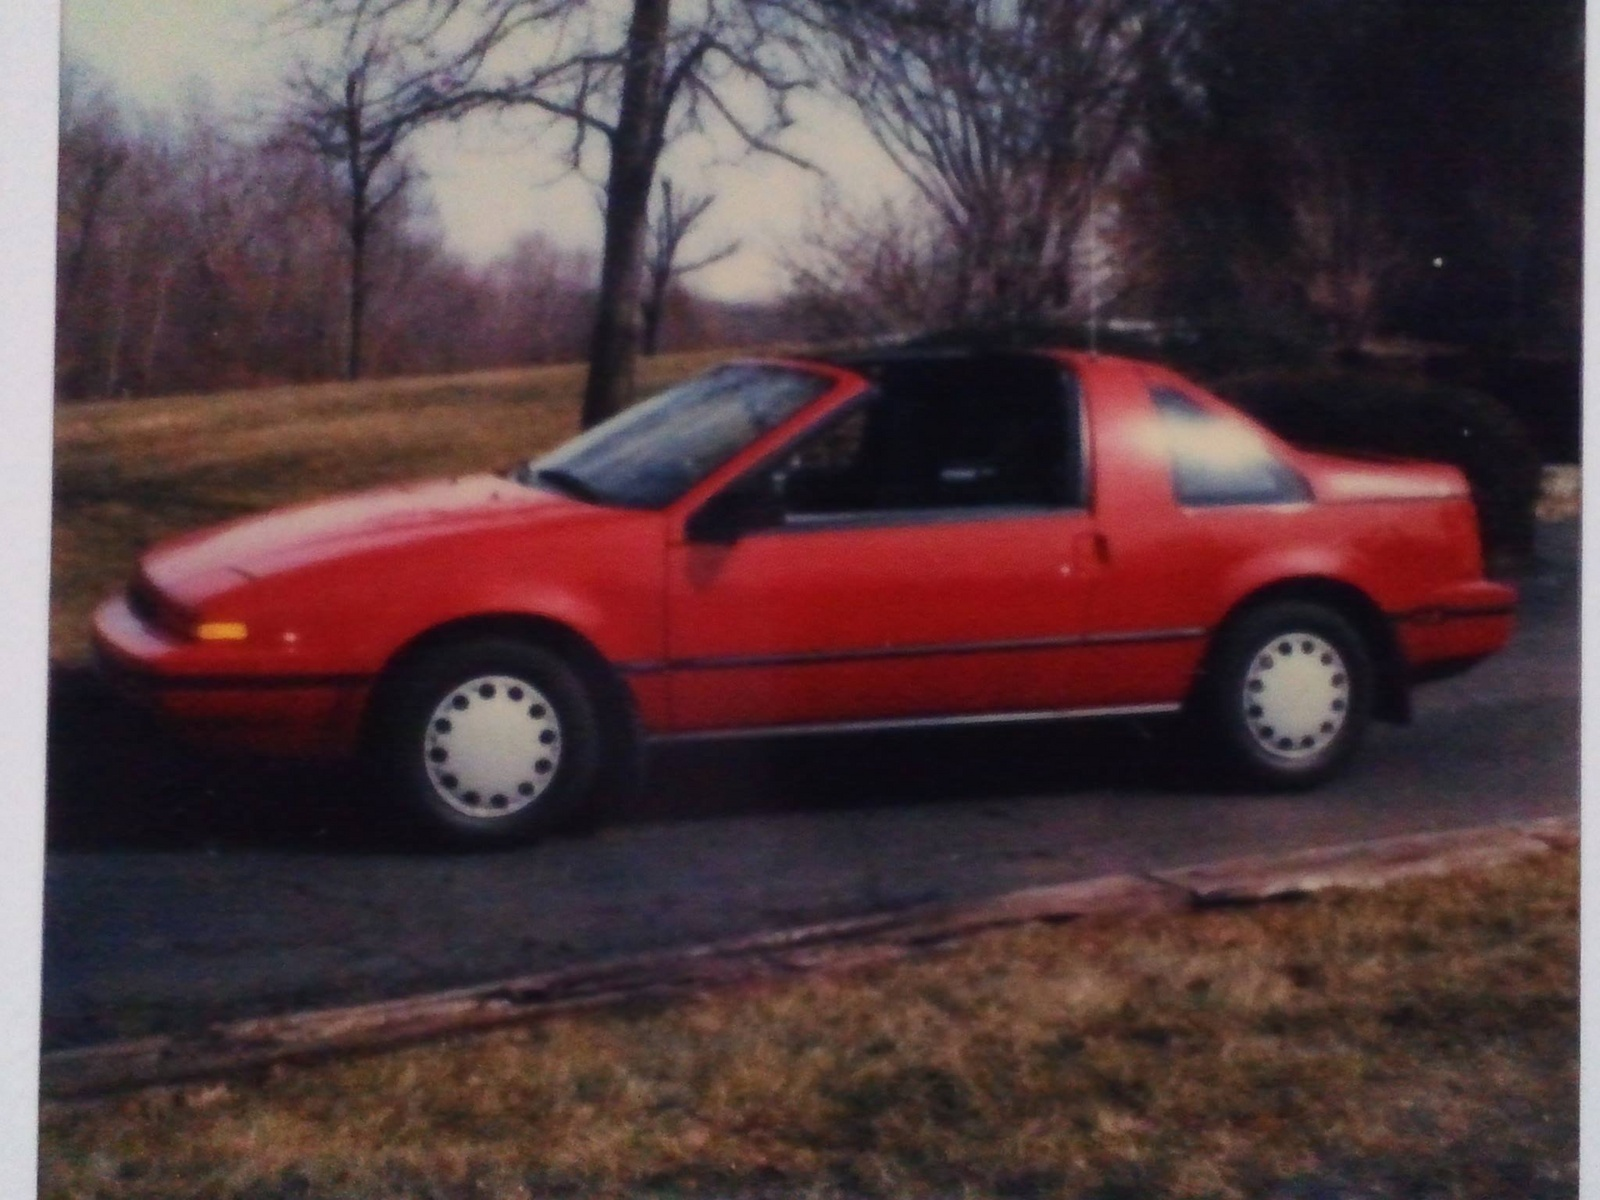 Home / Research / Nissan / Pulsar / 1987